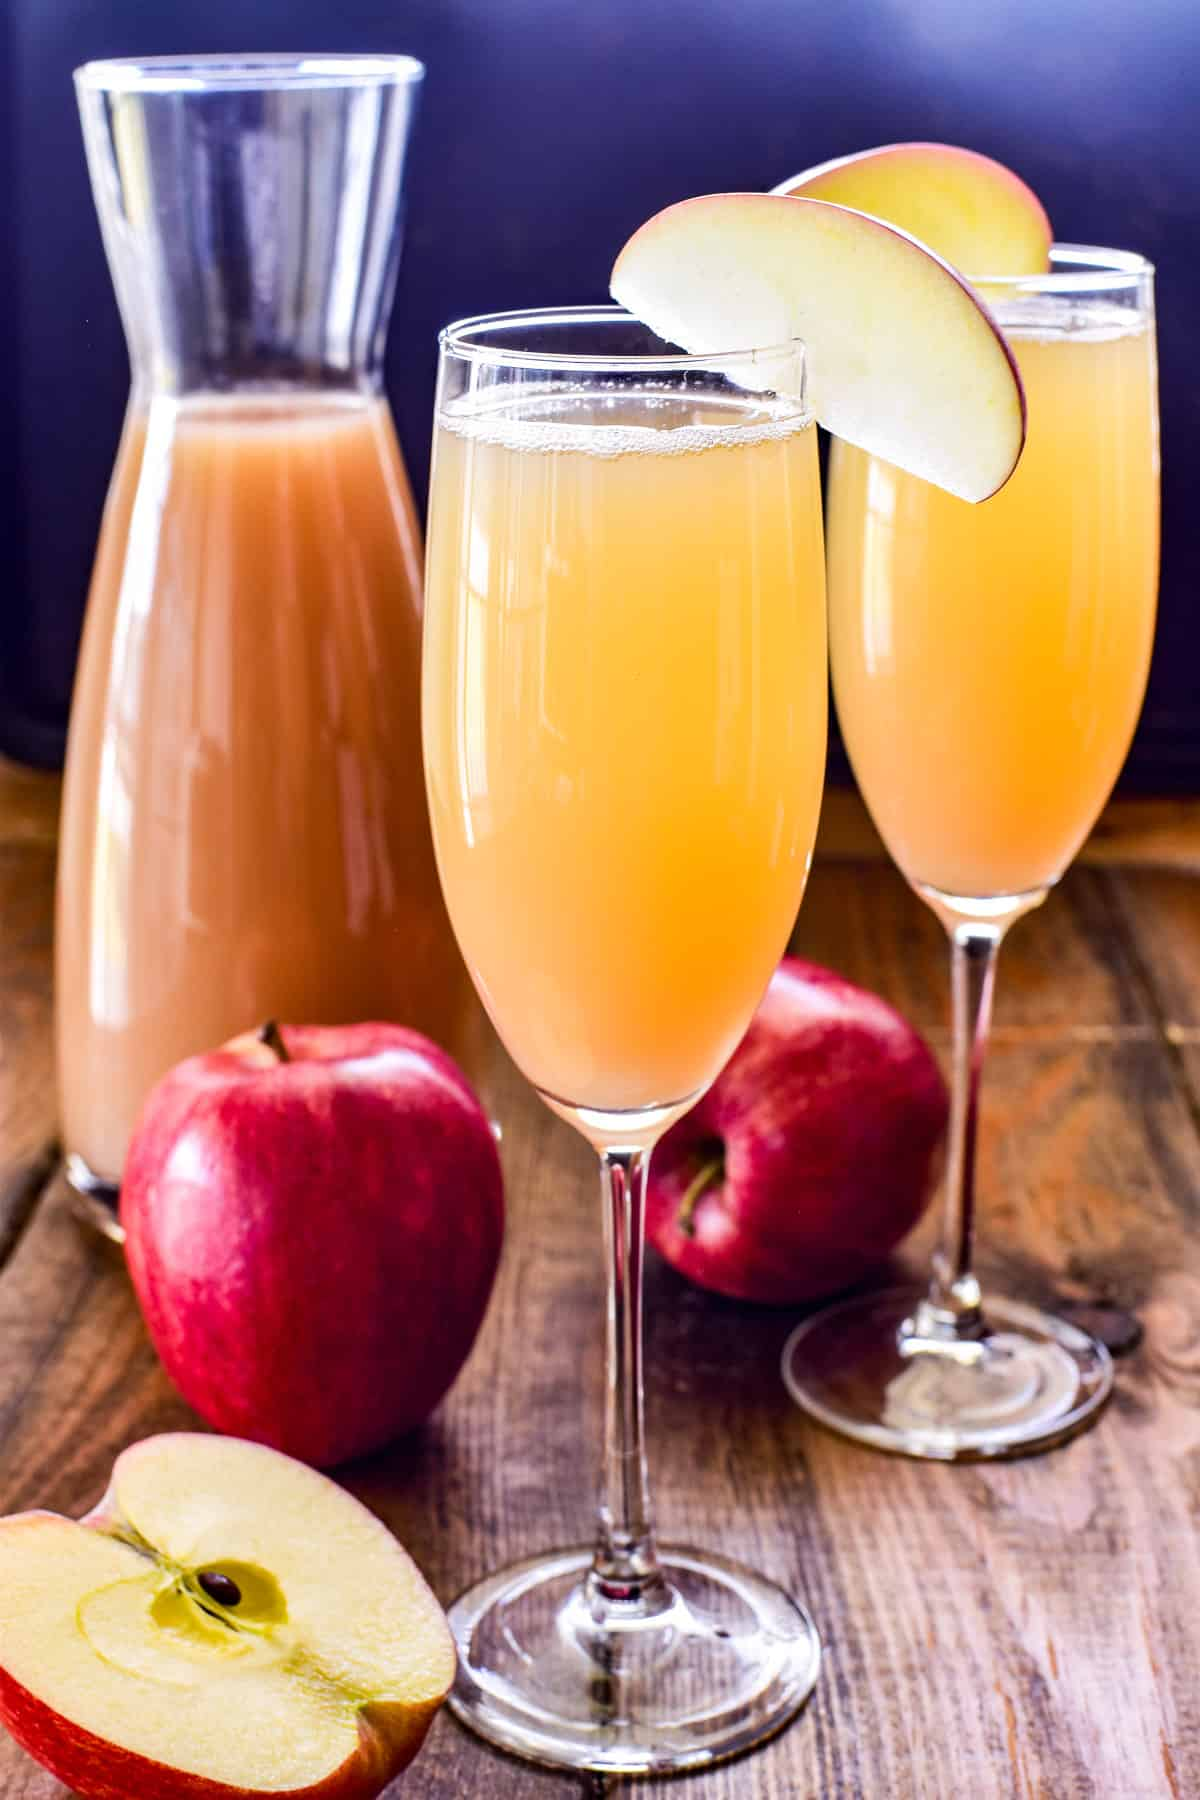 Apple Mimosa in a champagne glass with an apple garnish